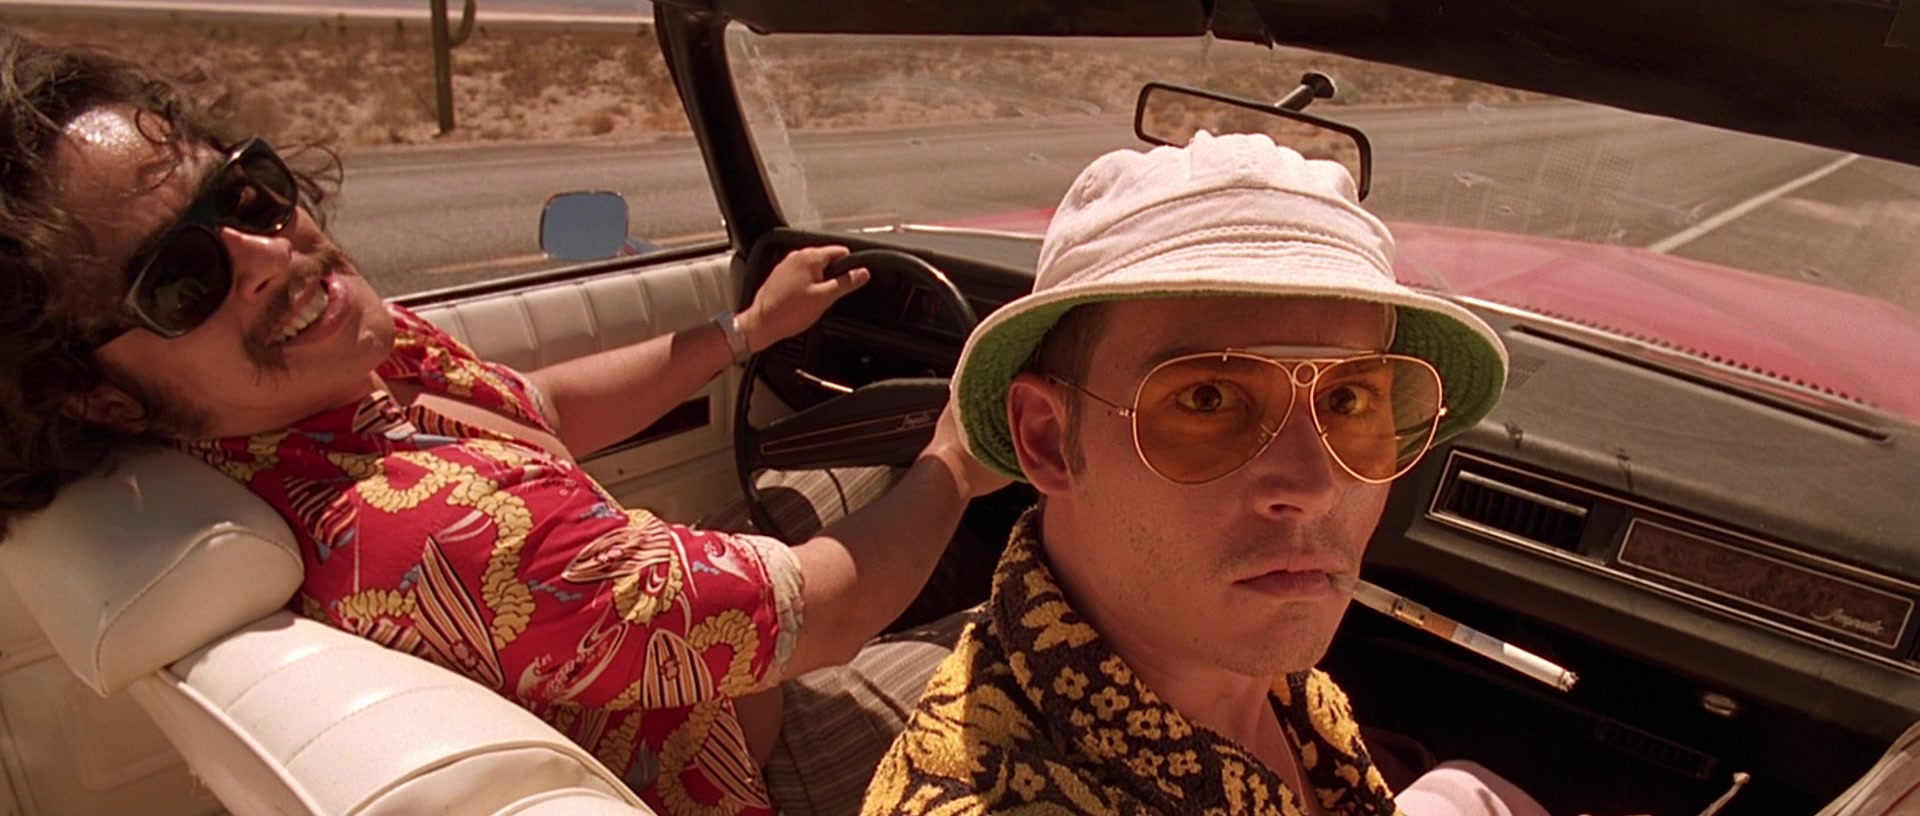 37a8ae7b6c Ray-Ban Shooter RB3138 Aviator Sunglasses Worn by Johnny Depp in Fear and  Loathing in